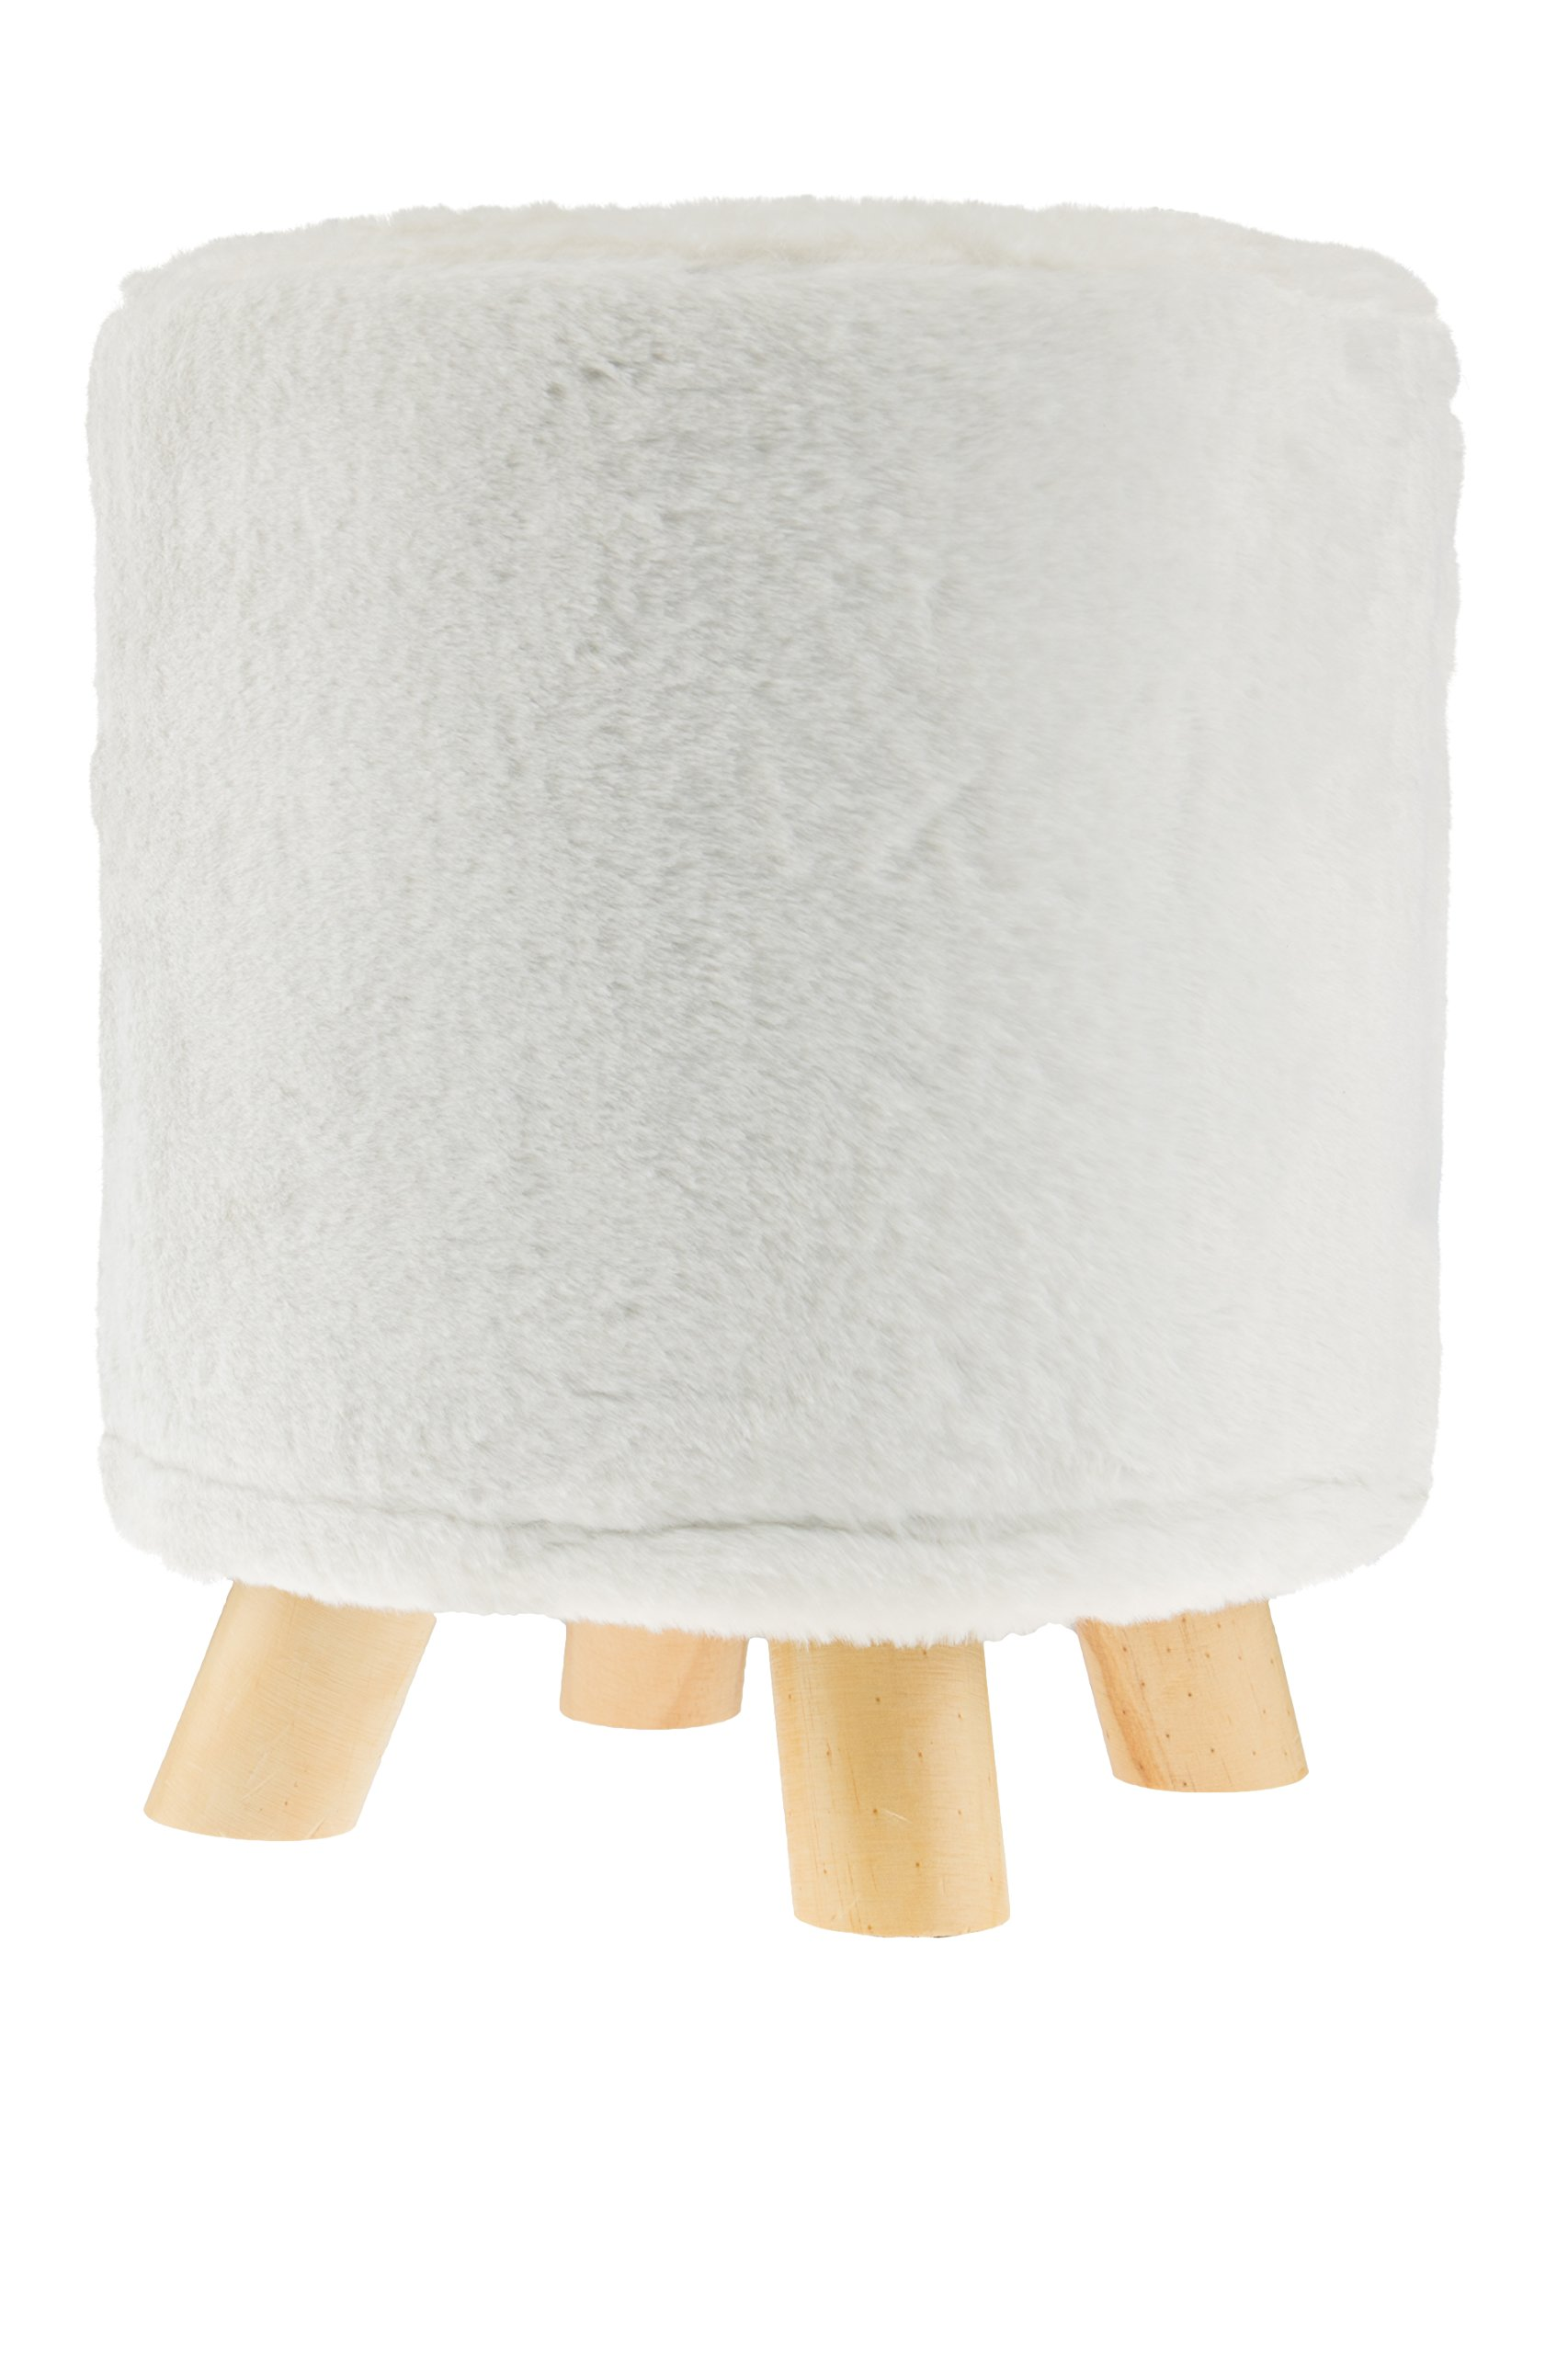 Premium White Ottoman with Faux Fur by Clever Creations   Round Foot Stool   Real Wood Legs   Stylish Trendy Décor   Perfect Size Stool for Any Room   Stands 12'' x 12'' x 13''